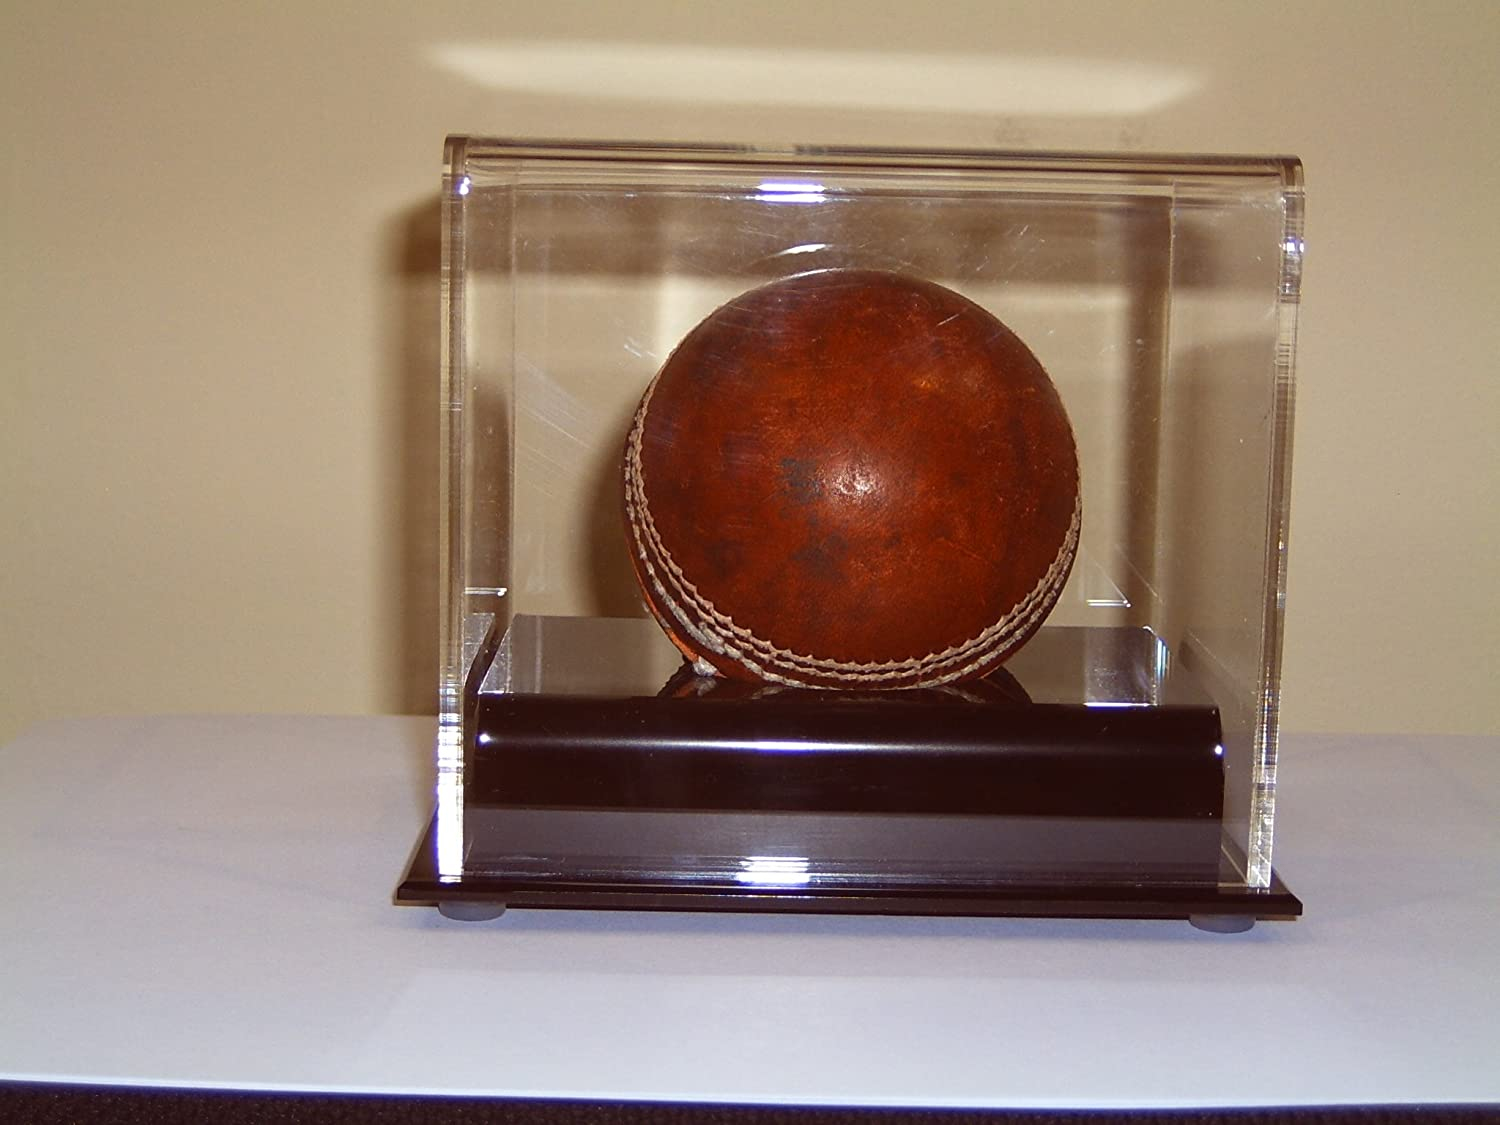 ACRYLIC PERSPEX FOOTBALL PROGRAMME DISPLAY CASE UV PROTECTION FOR VALUABLE ITEMS